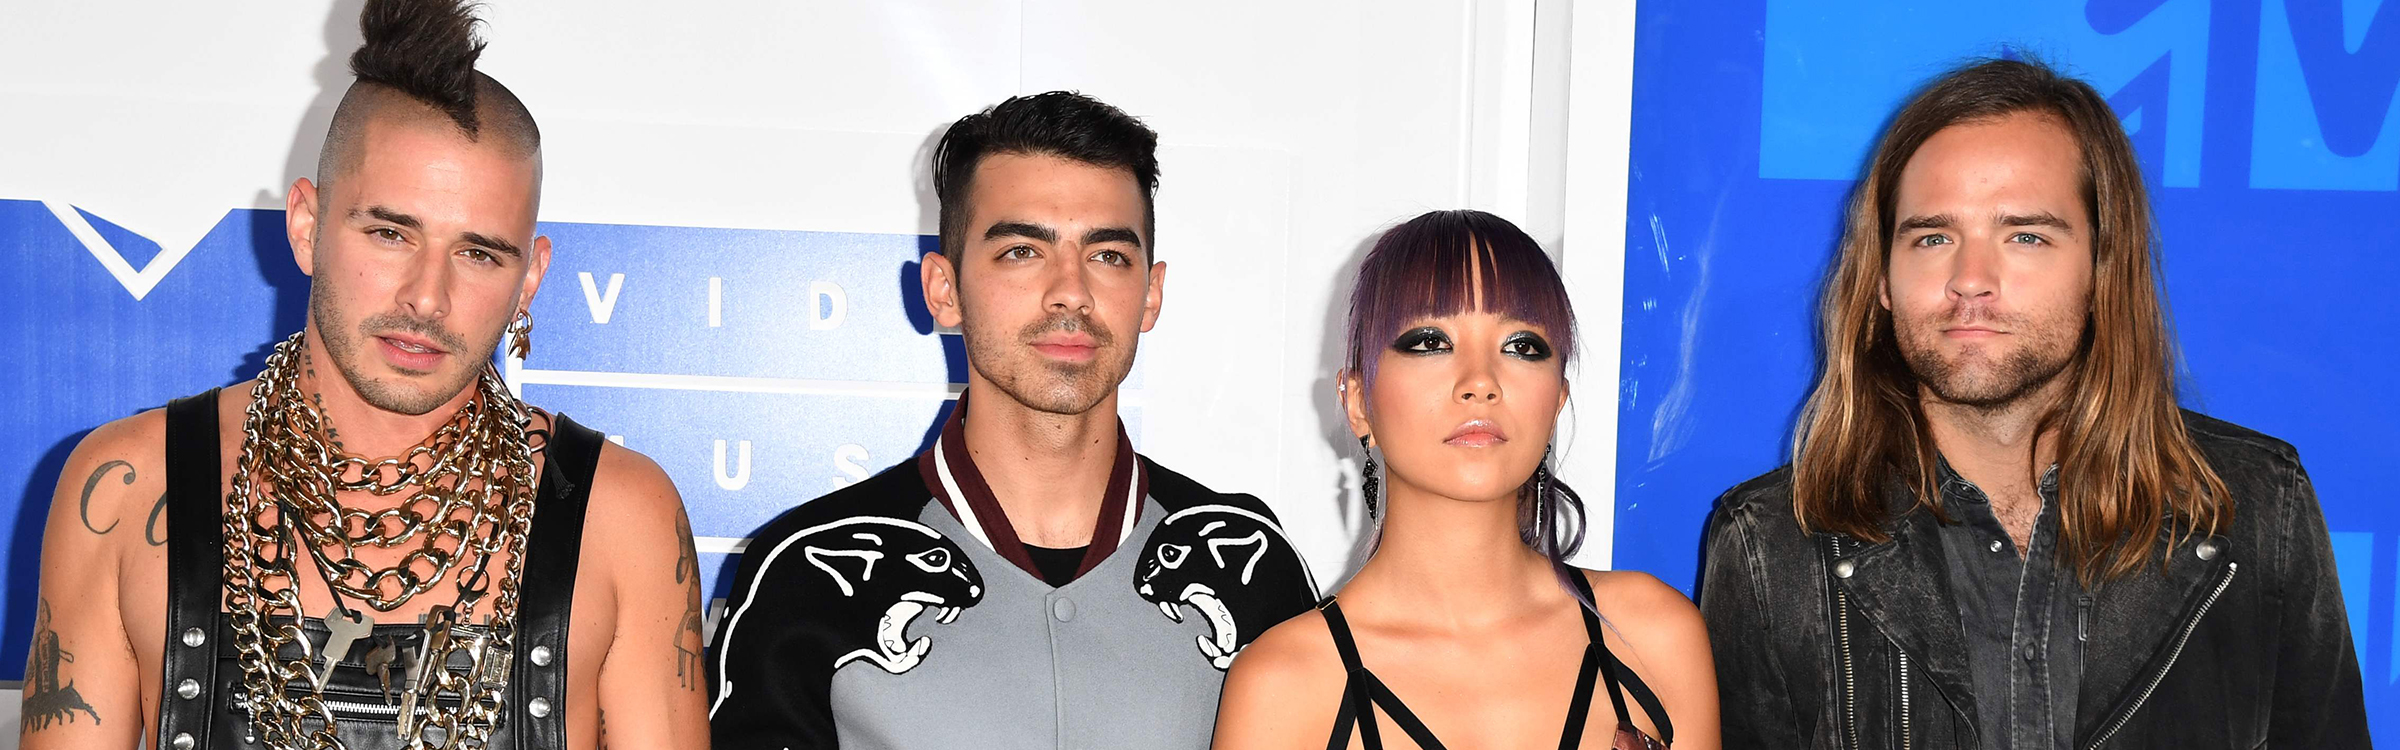 Dnce new album header